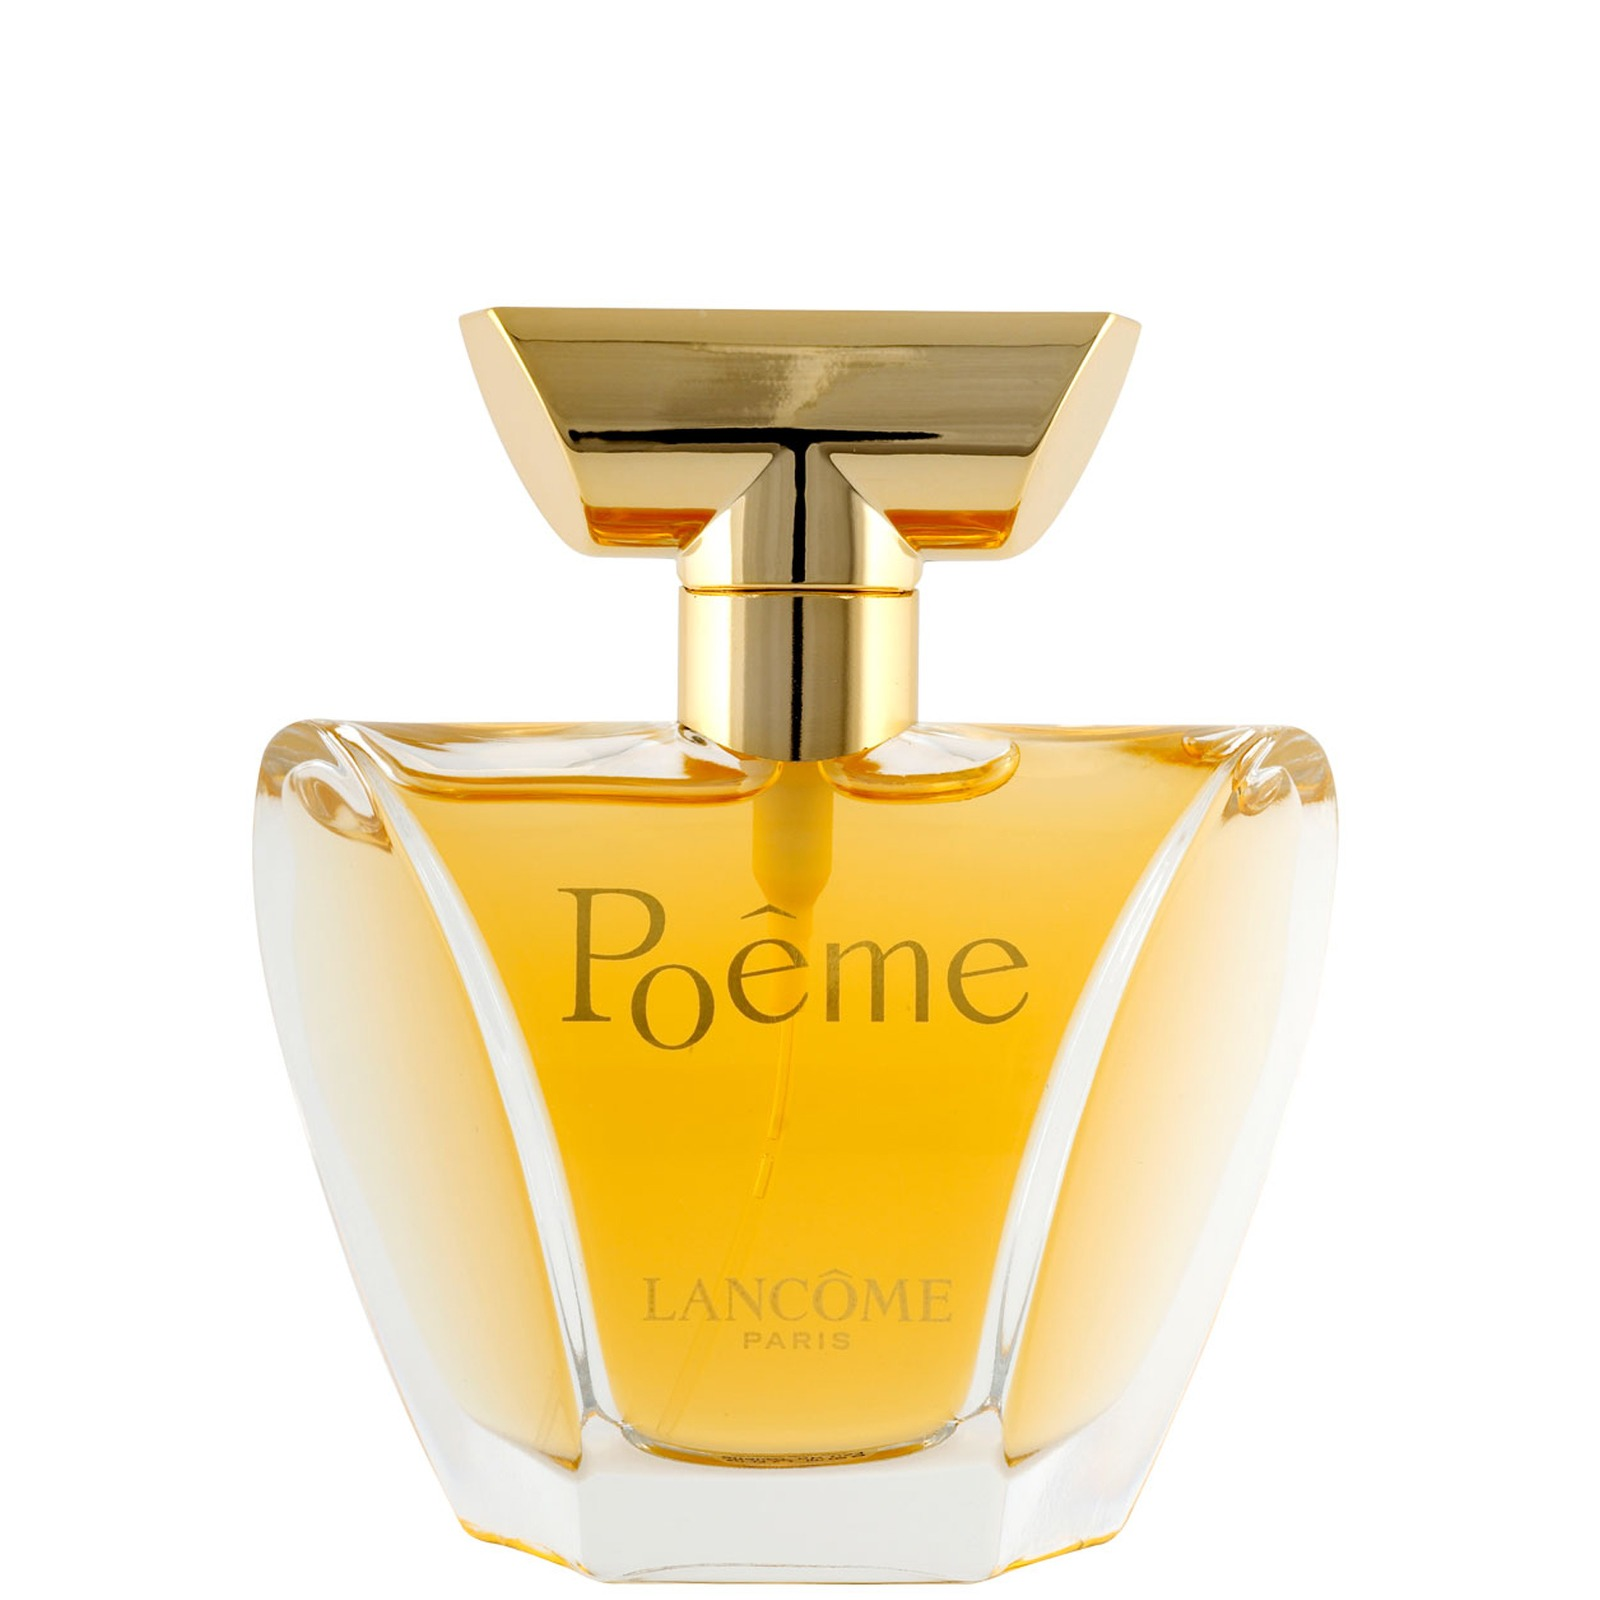 Lancome Poeme Eau de Parfum Spray 30ml